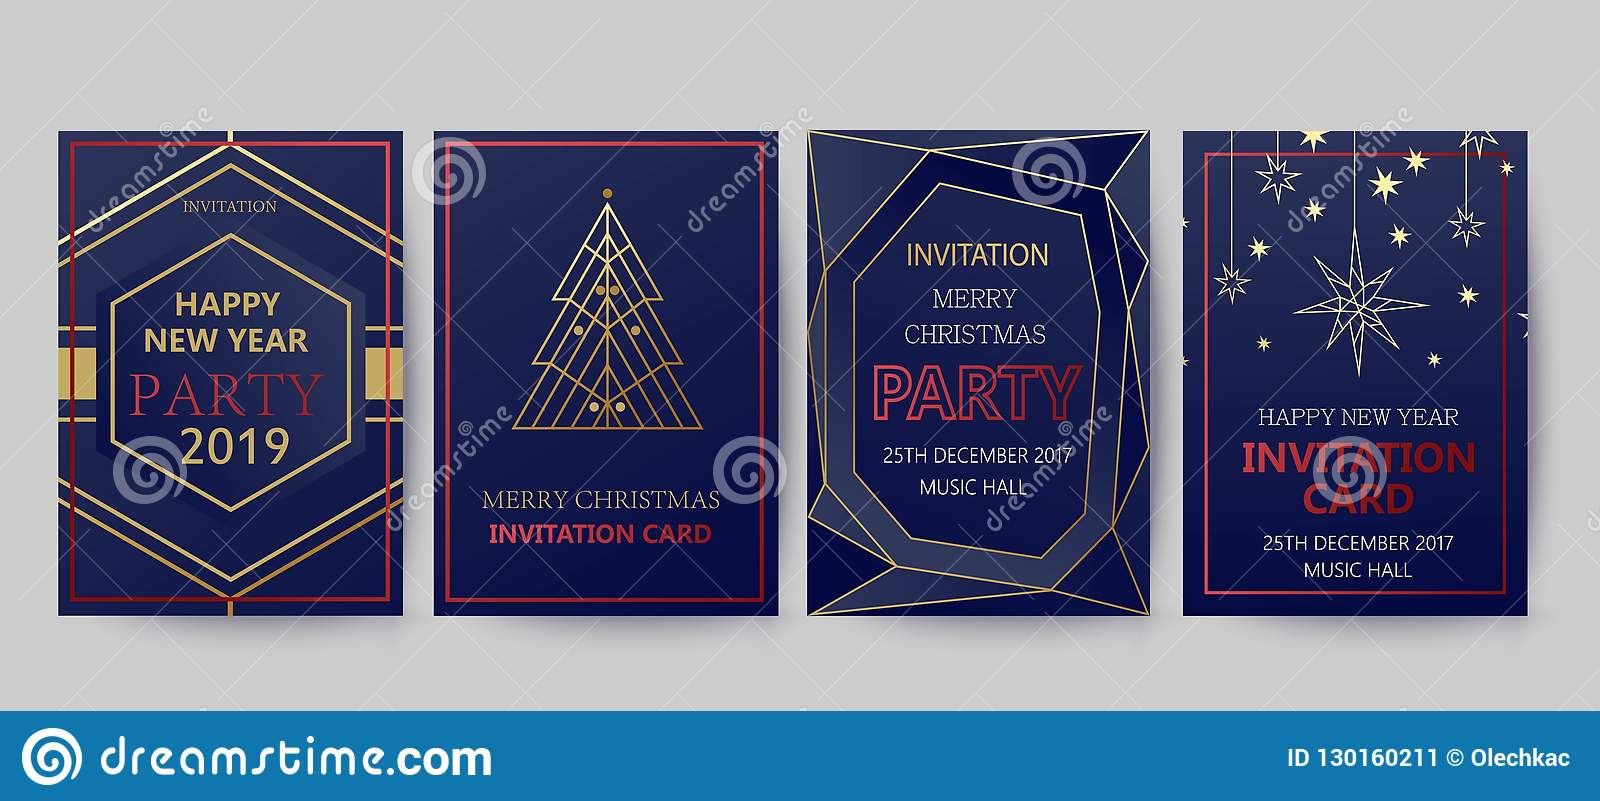 new year and merry christmas party invitation background geometric art style design with holiday